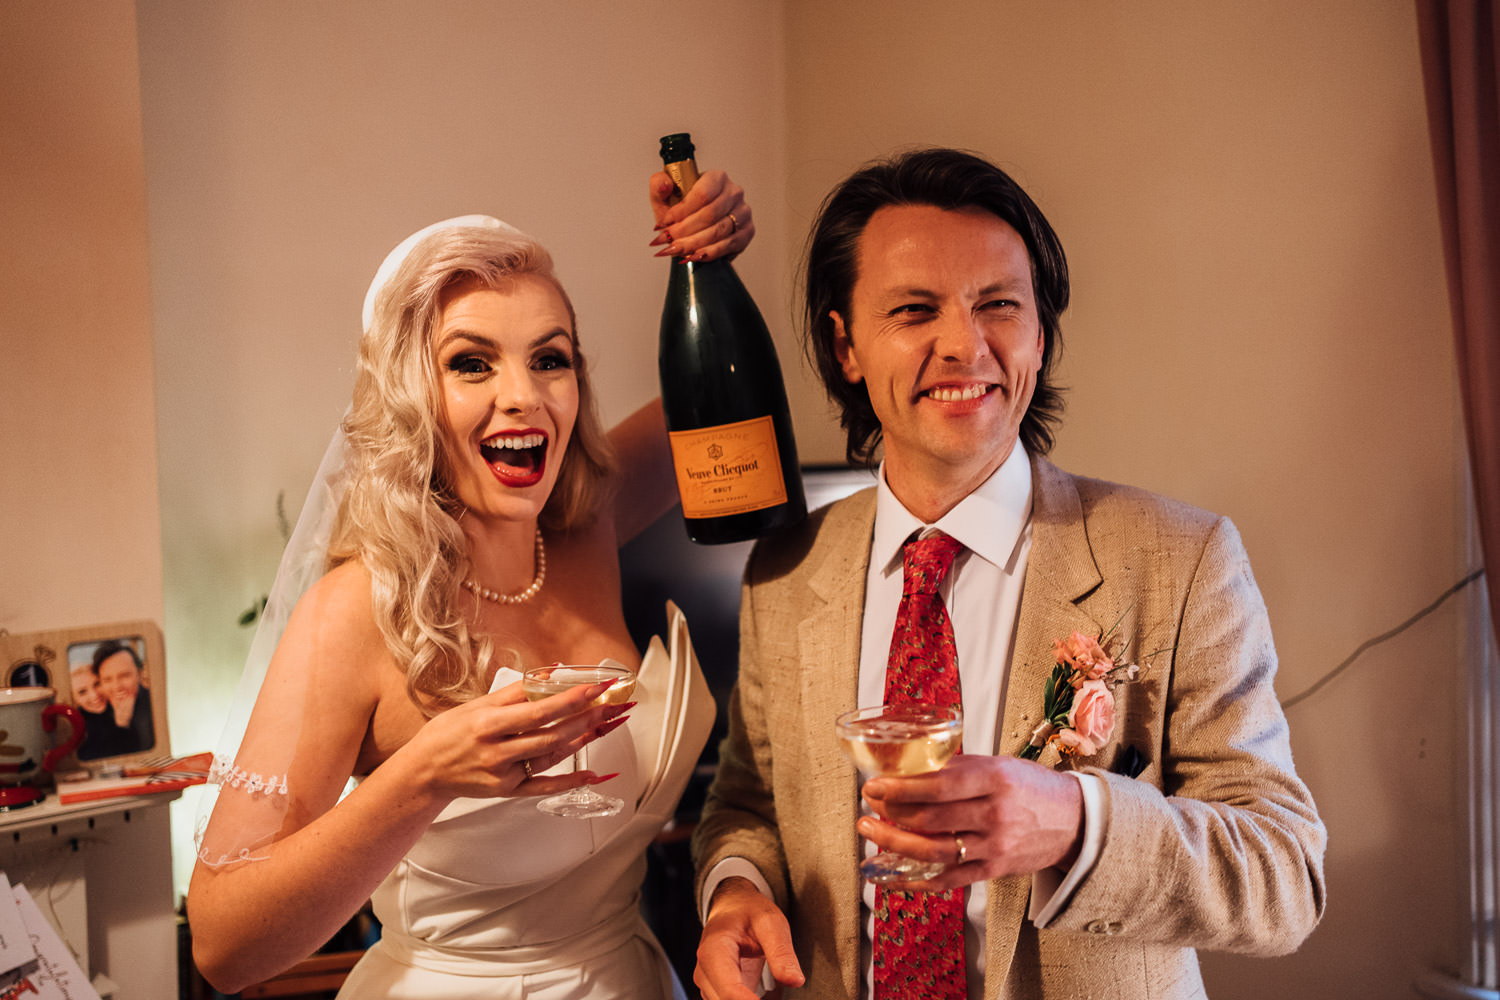 champagne celebration in london micro wedding